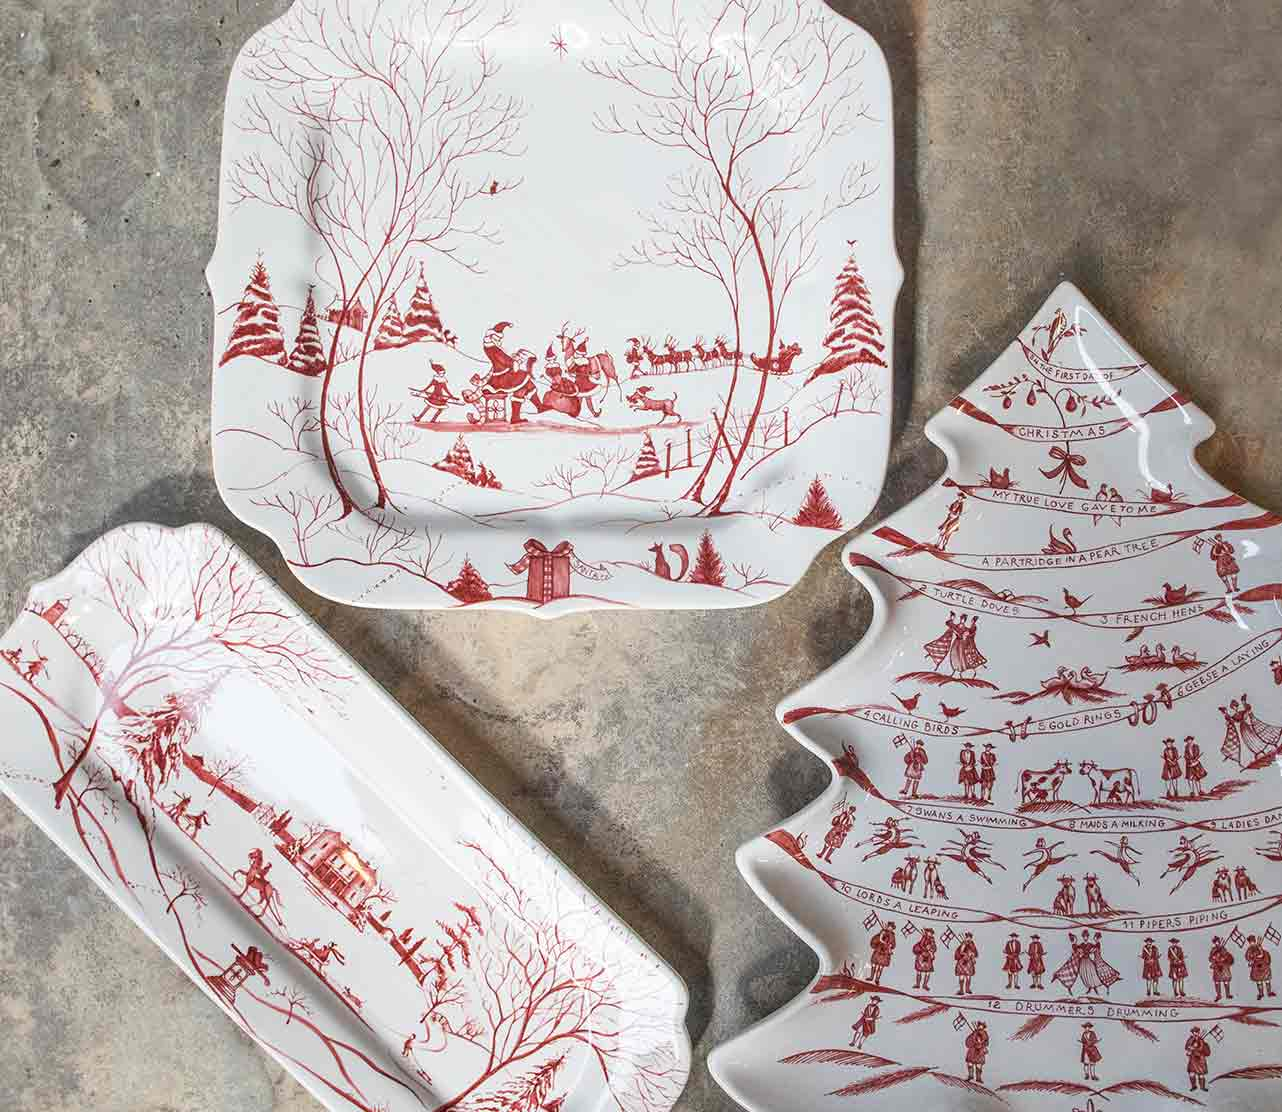 An image of red and white ceramic decorative Christmas Holiday Plates